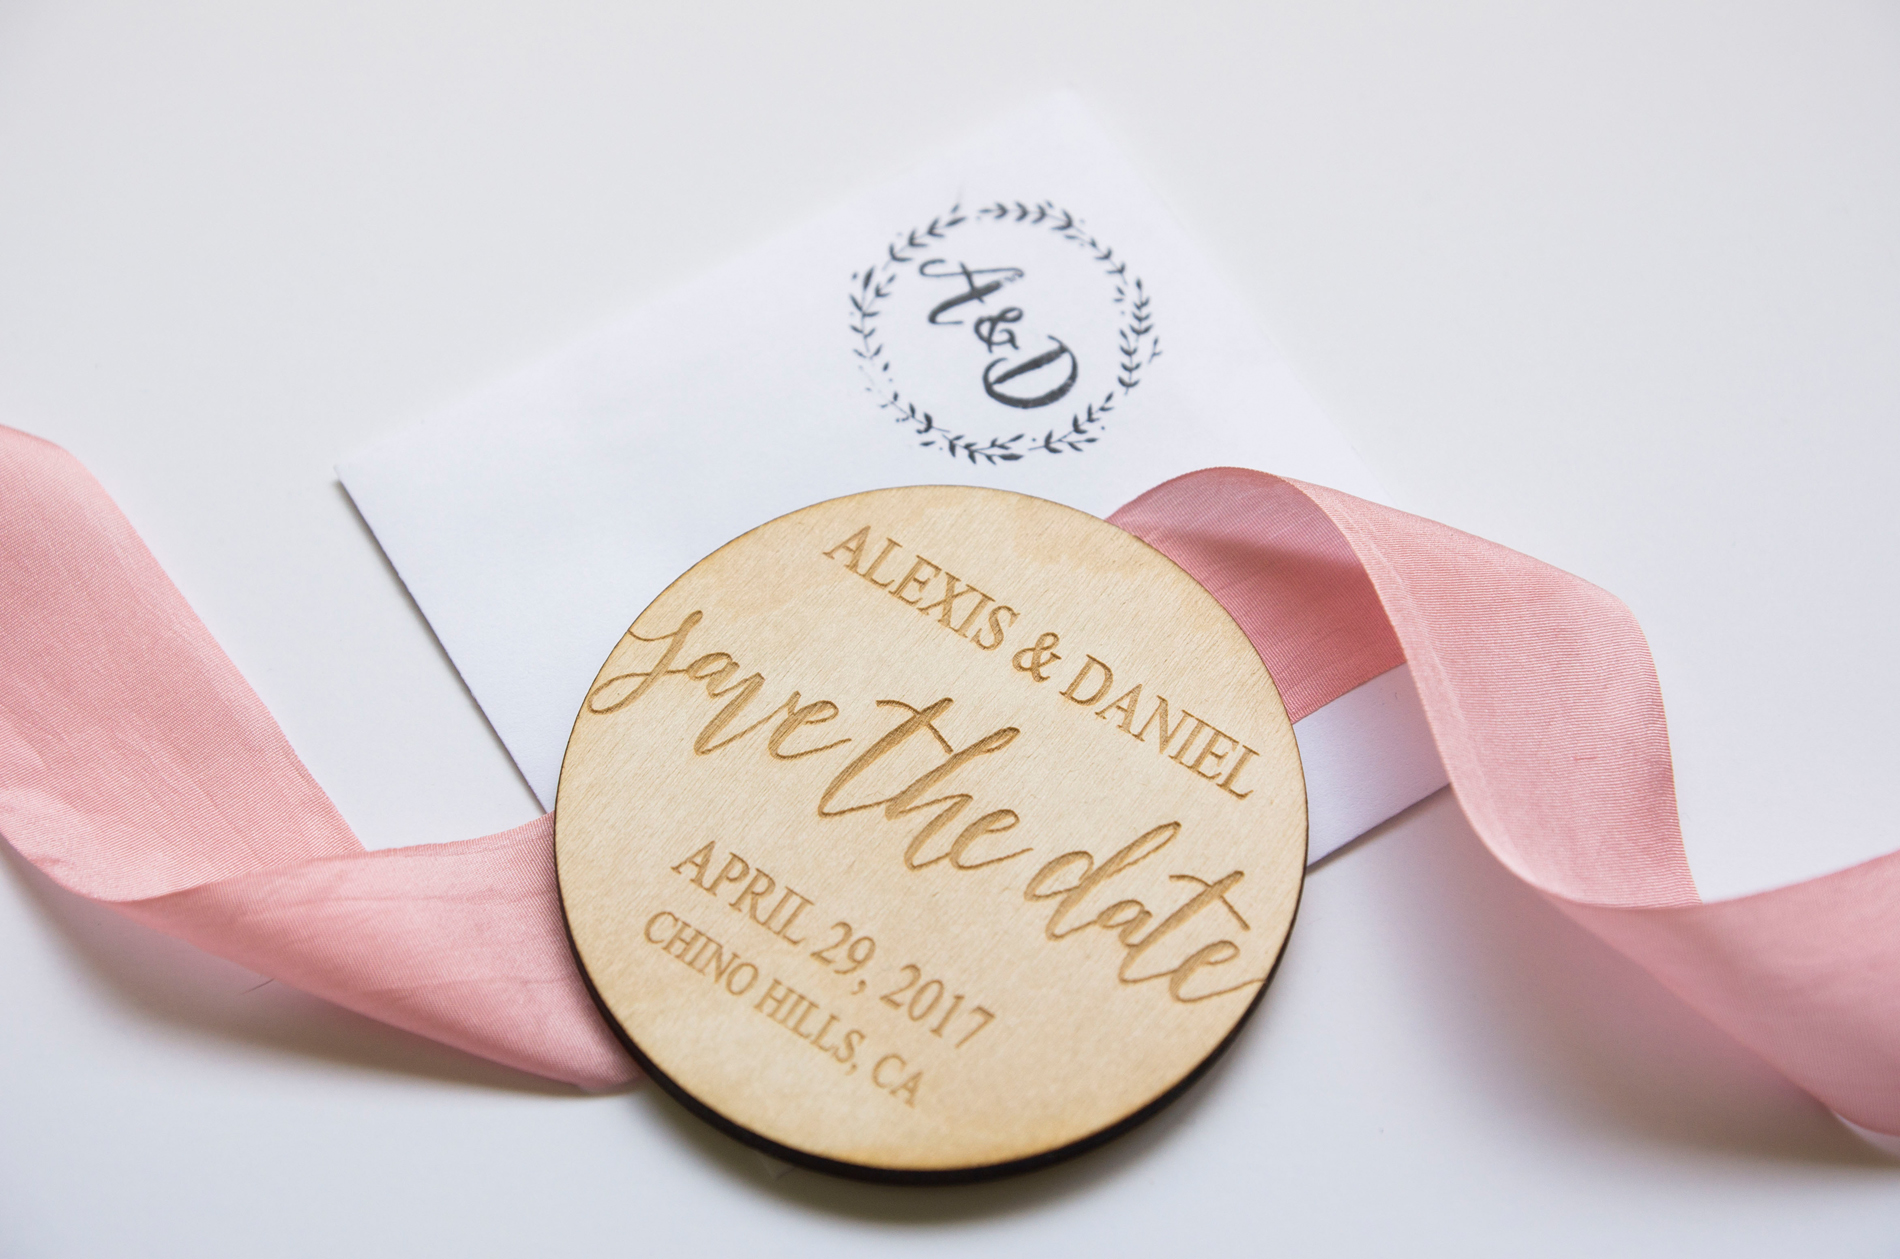 Wooden Save the Date - A McCoy Equestrian Center Wedding - Peterson Design & Photography